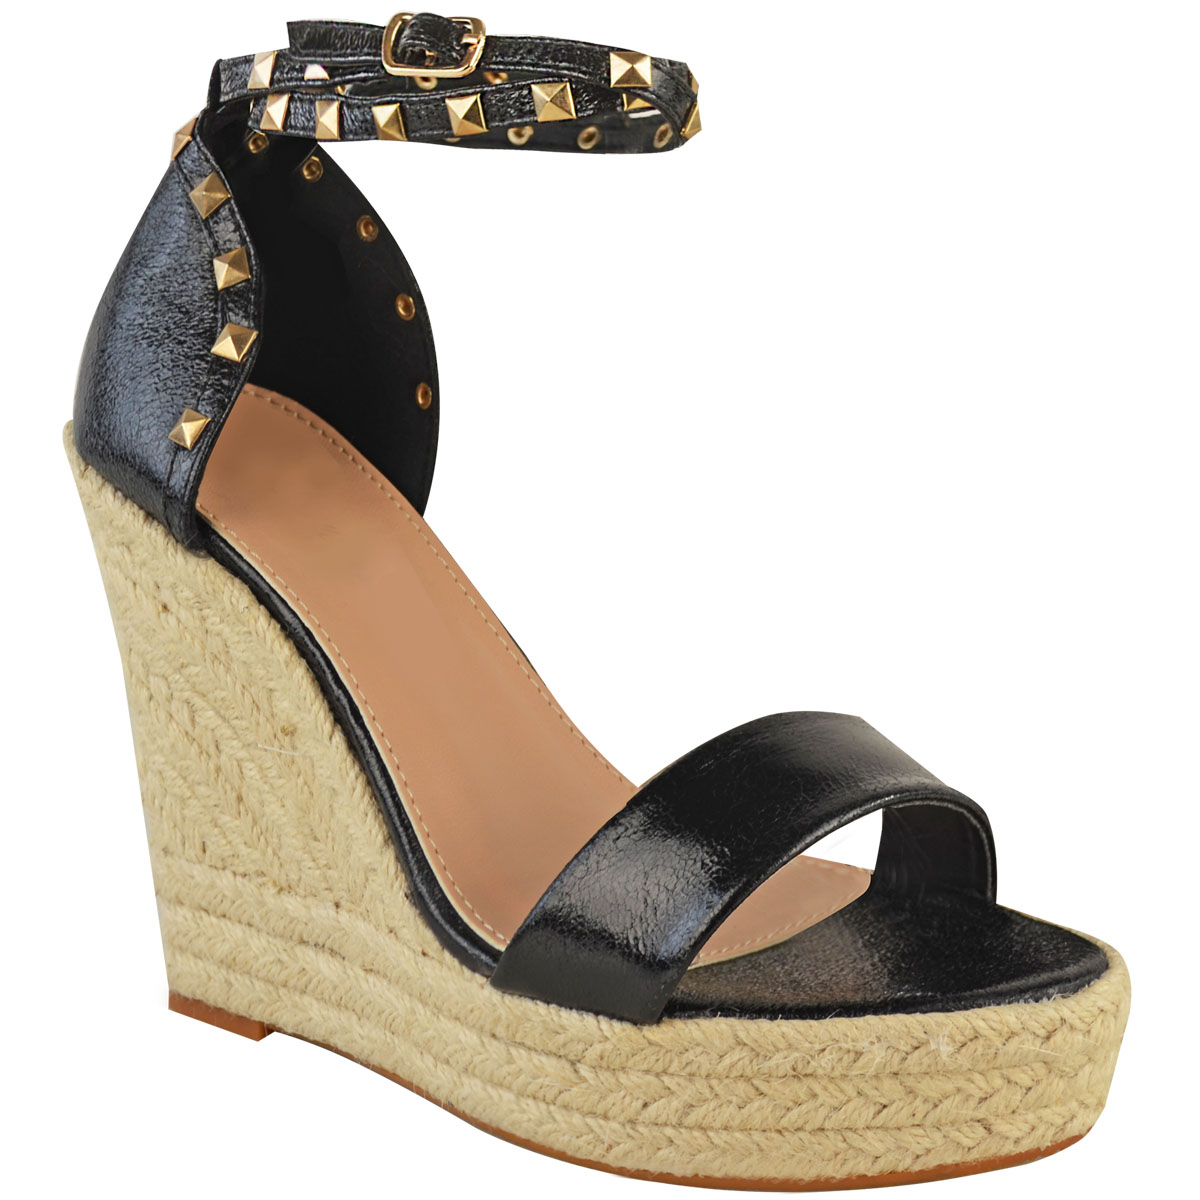 Womens Sandals & Wedges No matter your style the sandal is a warm-weather essential for every girl. The Express sandal collection offers embellished and lace-up flats, espadrille and strappy wedges, sling backs, gladiators, t-straps and more to match your different looks.